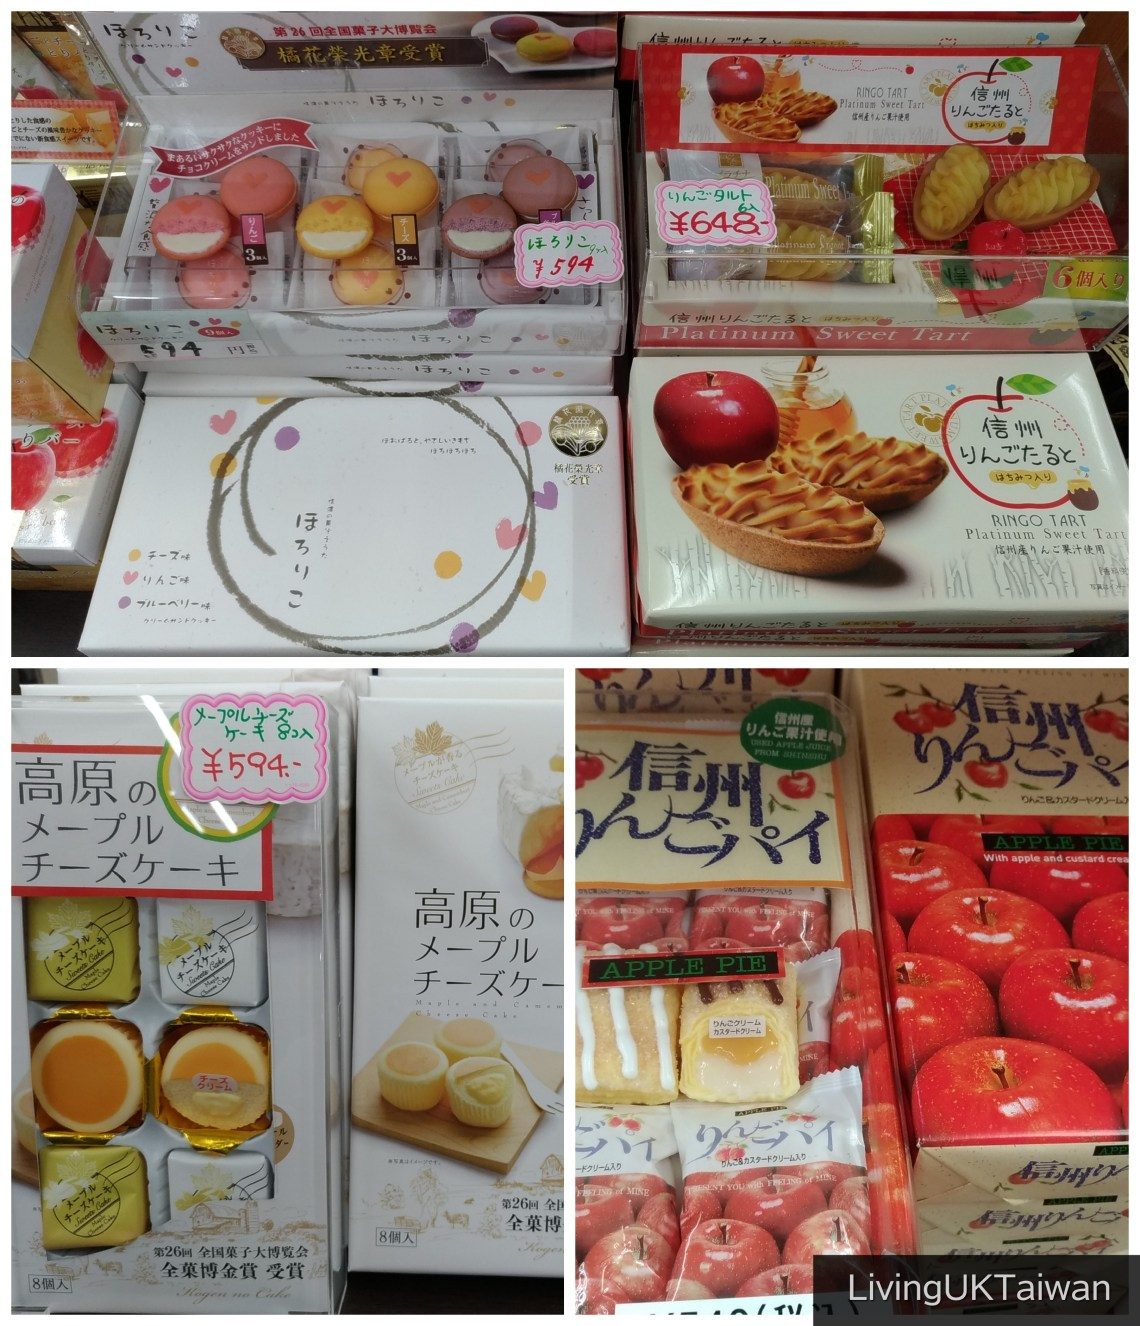 Snacks in a service station